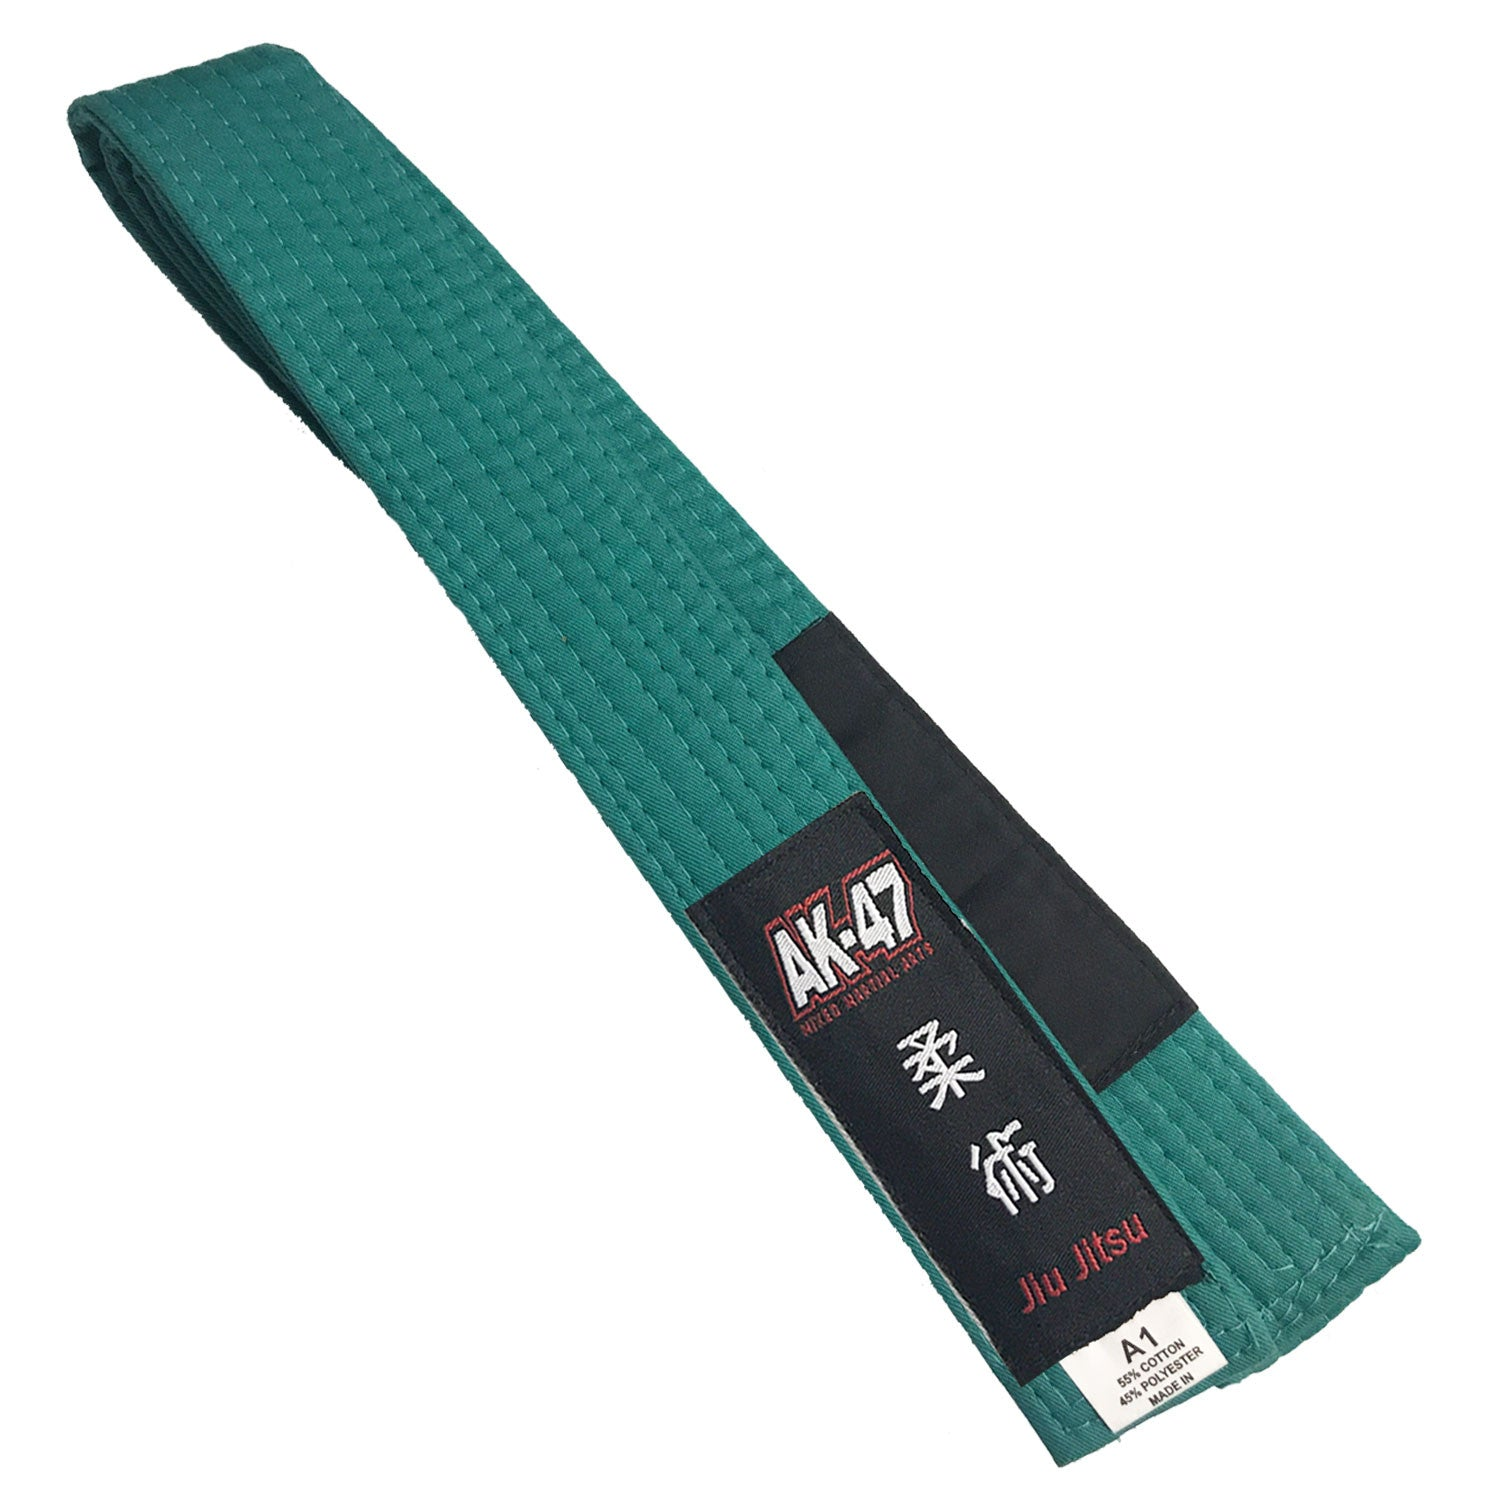 AK-47 Jiu Jitsu Green Belt